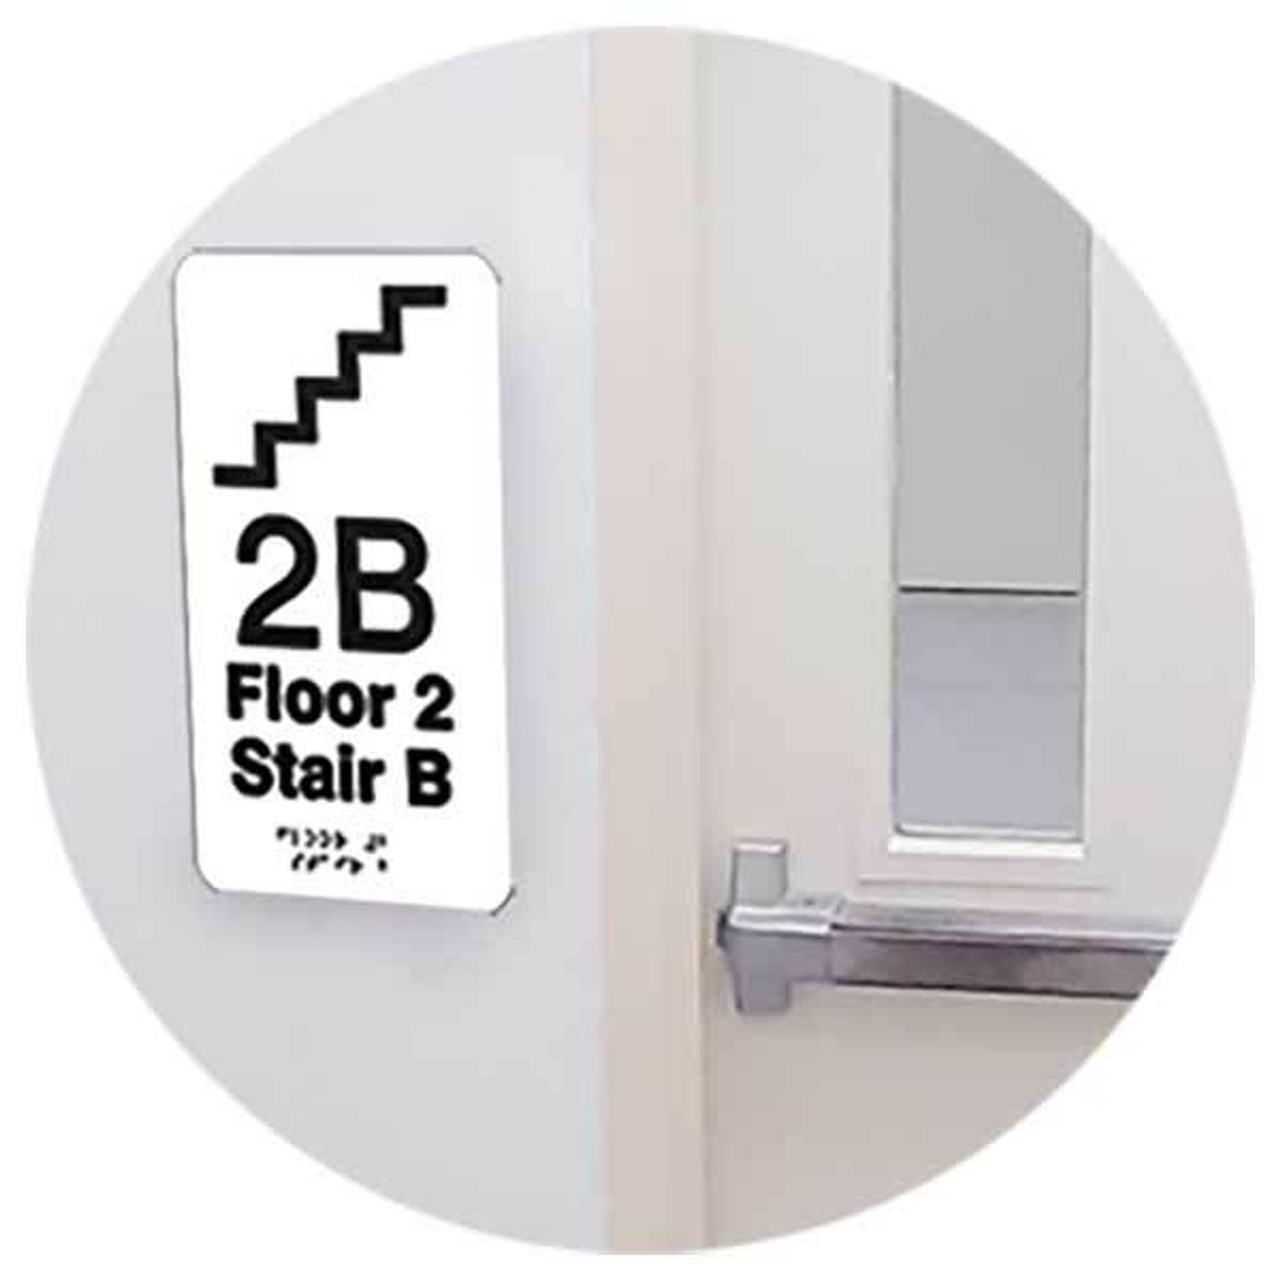 Tactile Signs and Floor Identification Markers